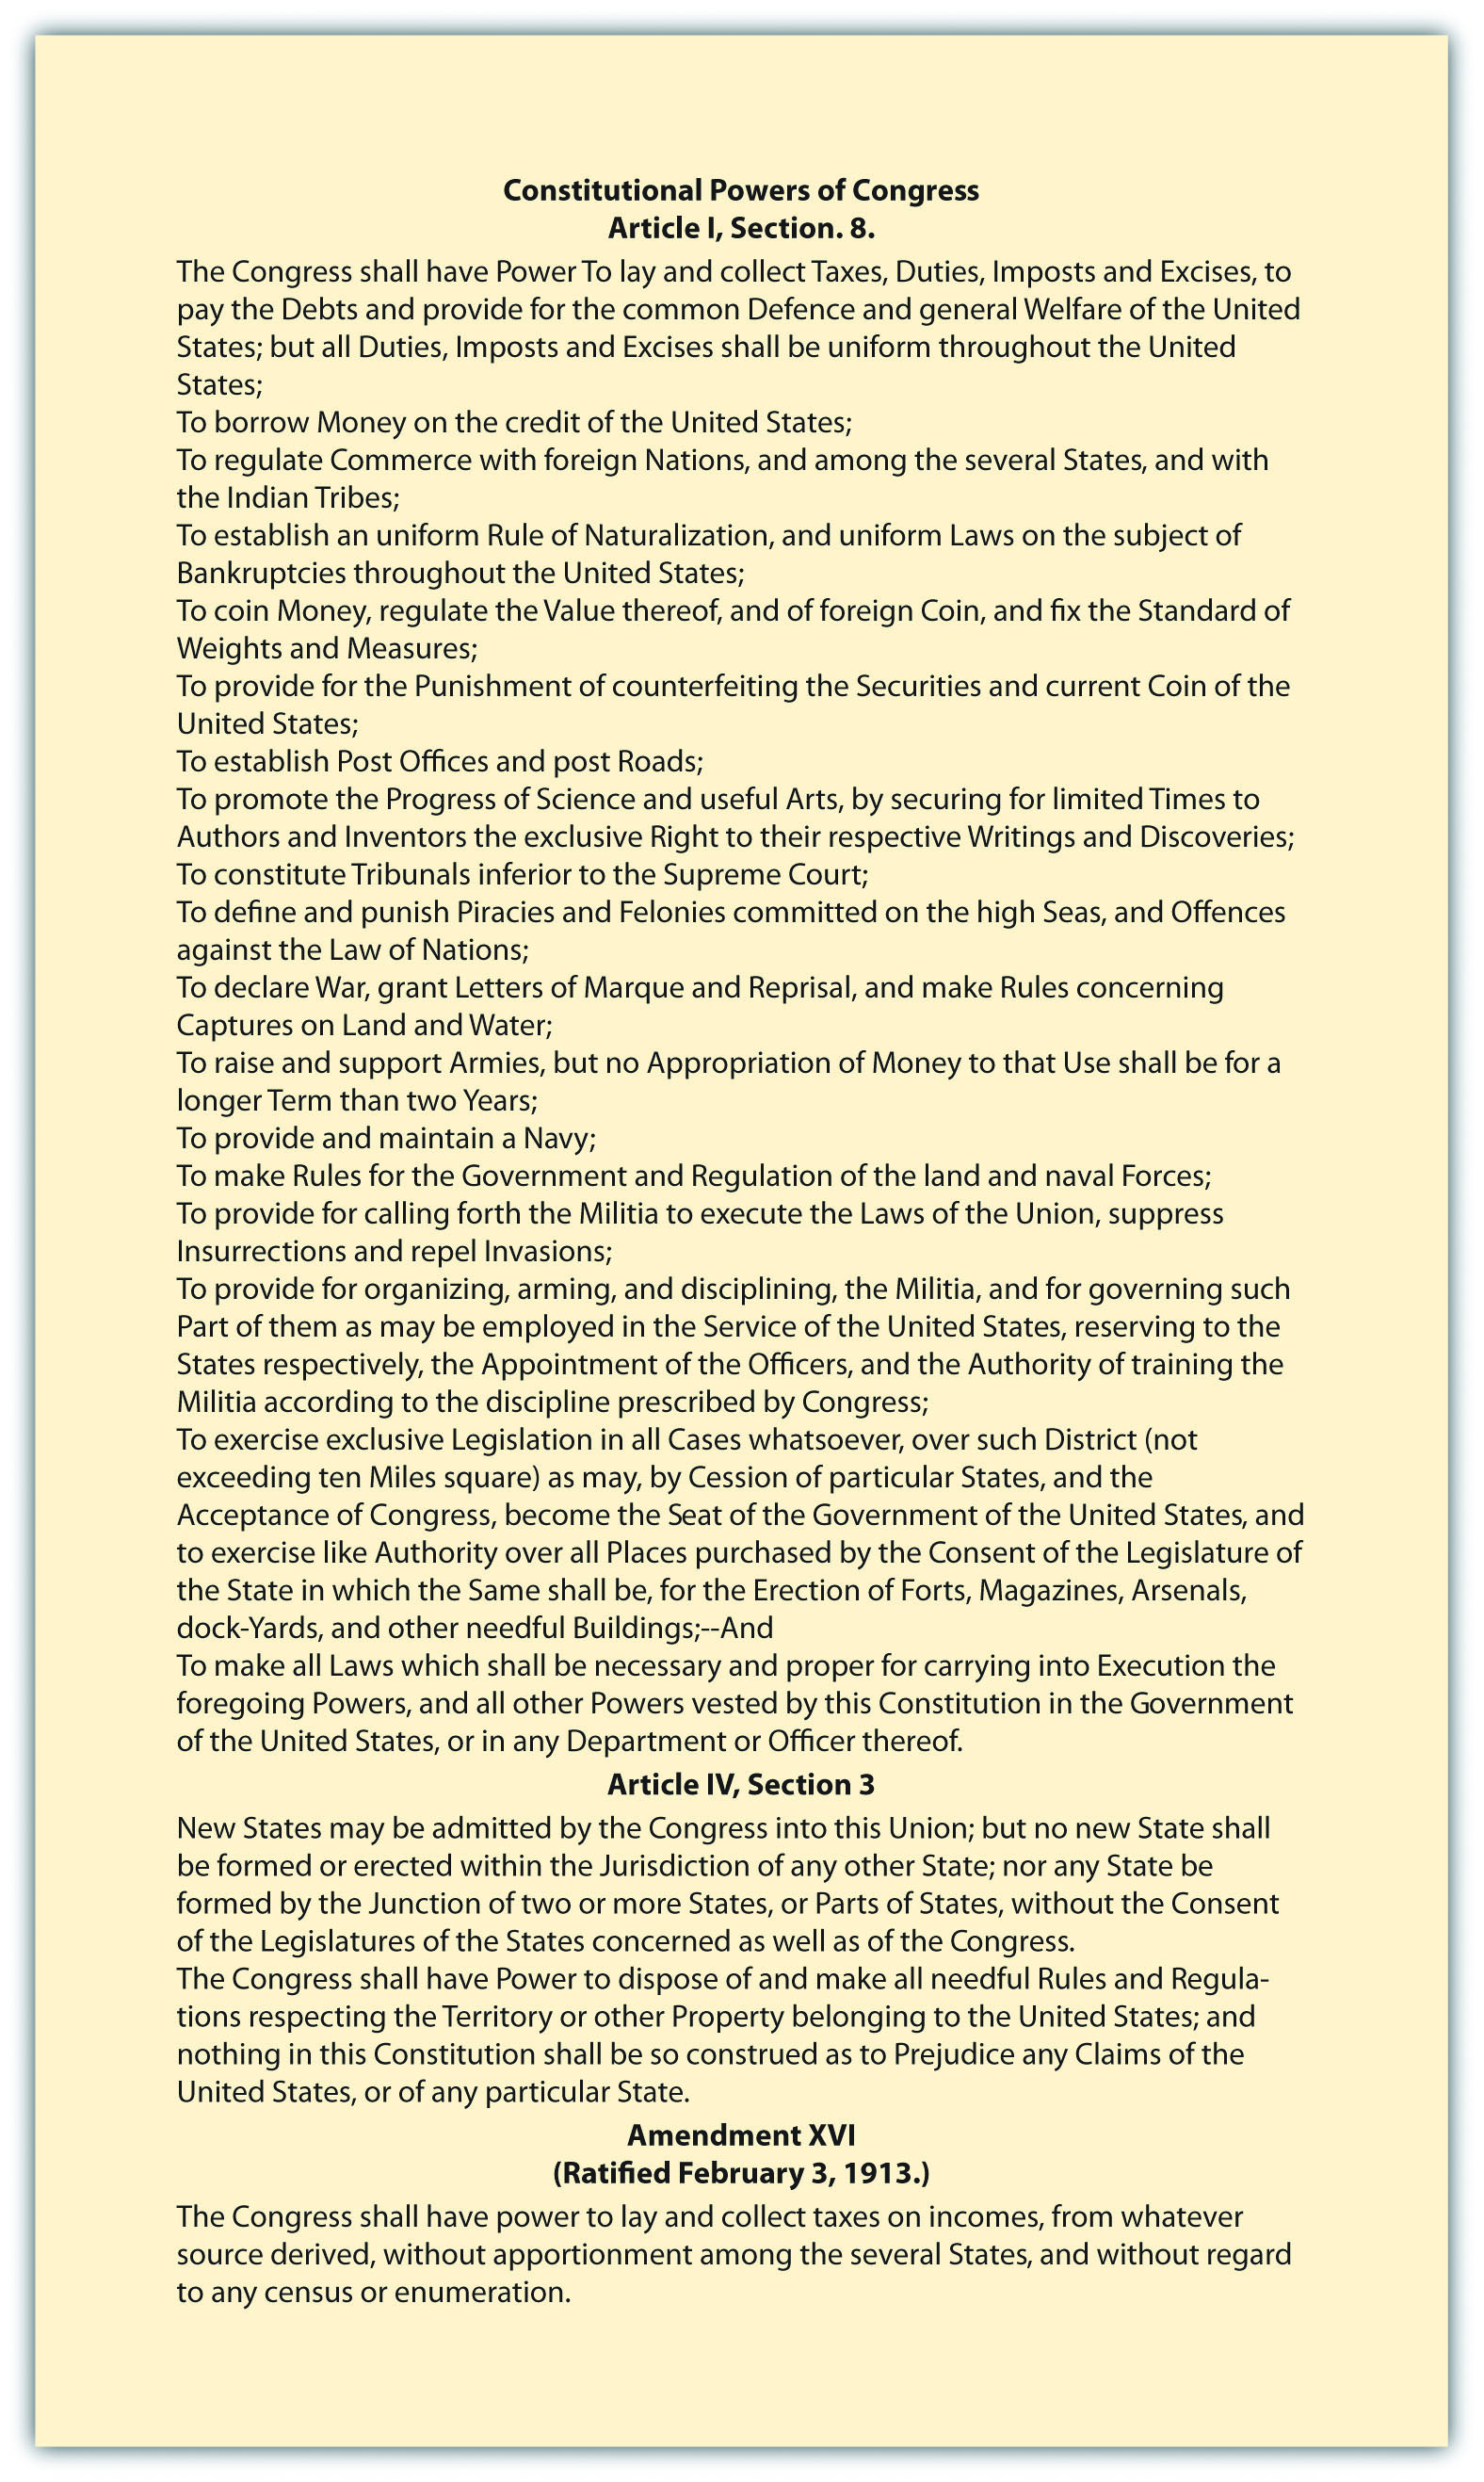 political governance of philippines constitution article Politics of the philippines  a new constitution calling for a semi-presidential government was approved in 1973,  political dynasties in the philippines.